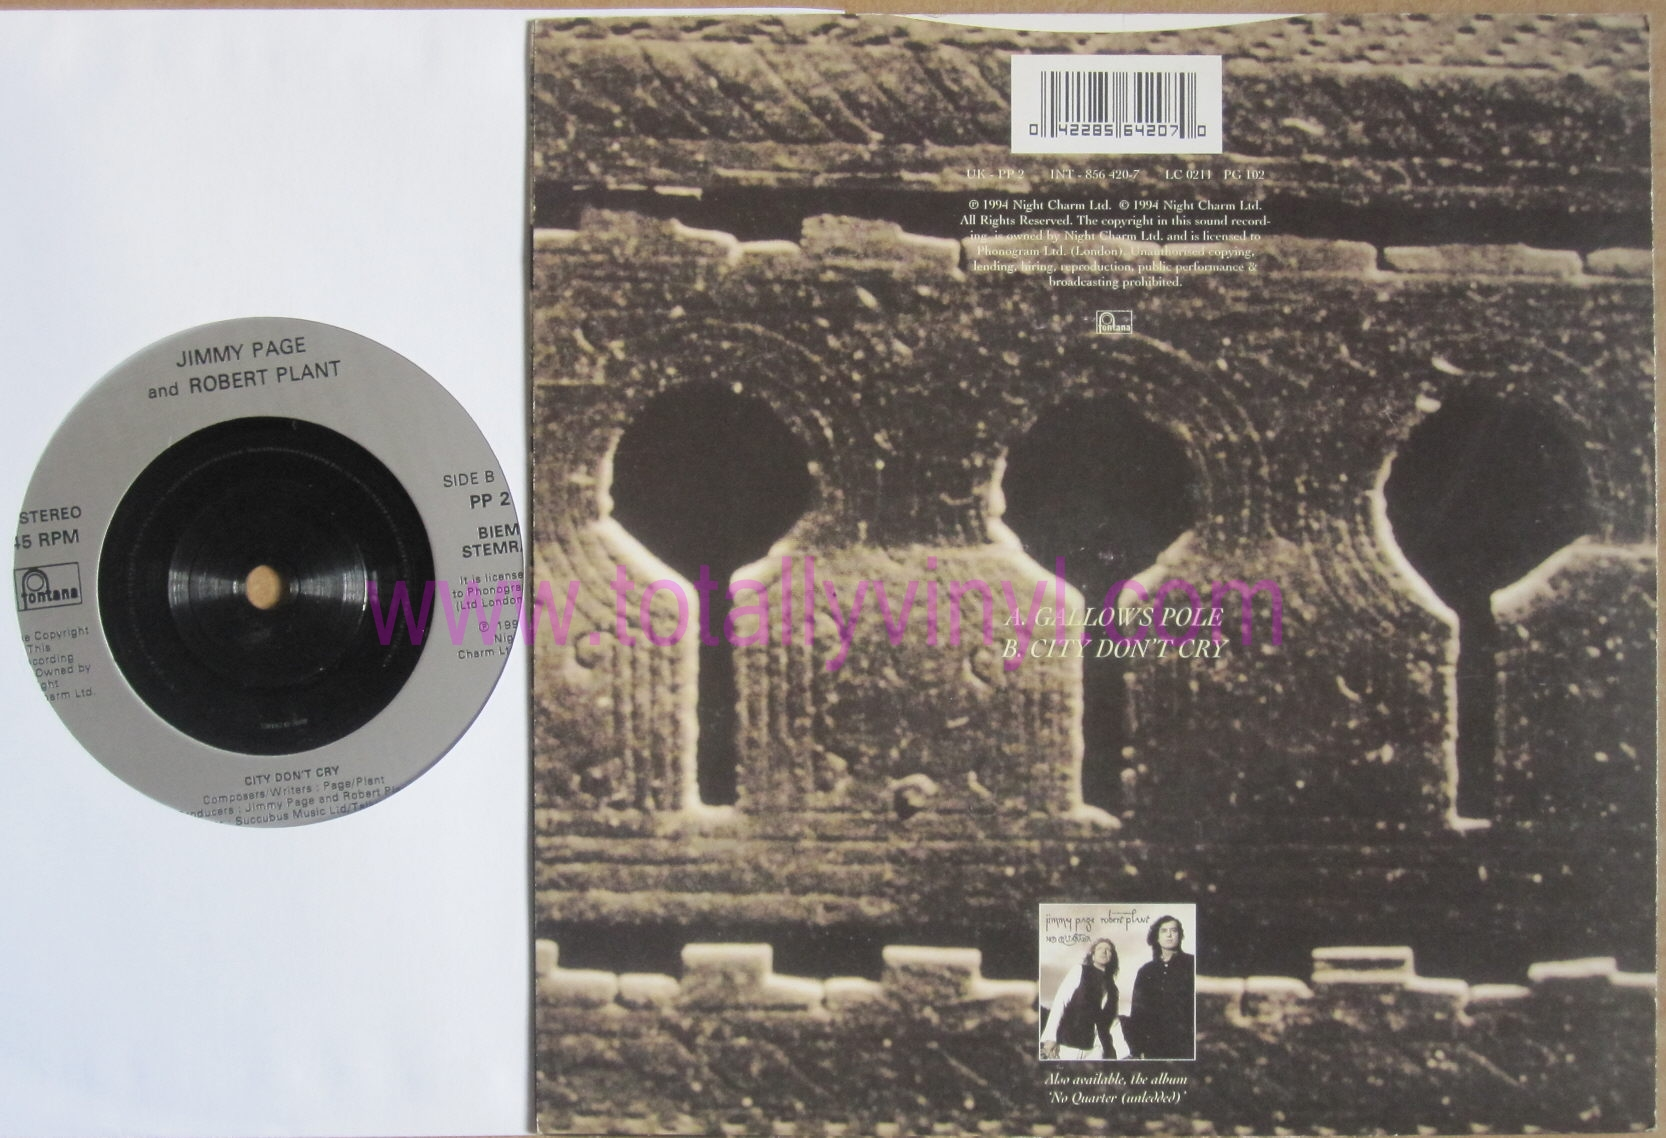 Totally Vinyl Records Page And Robert Plant Jimmy